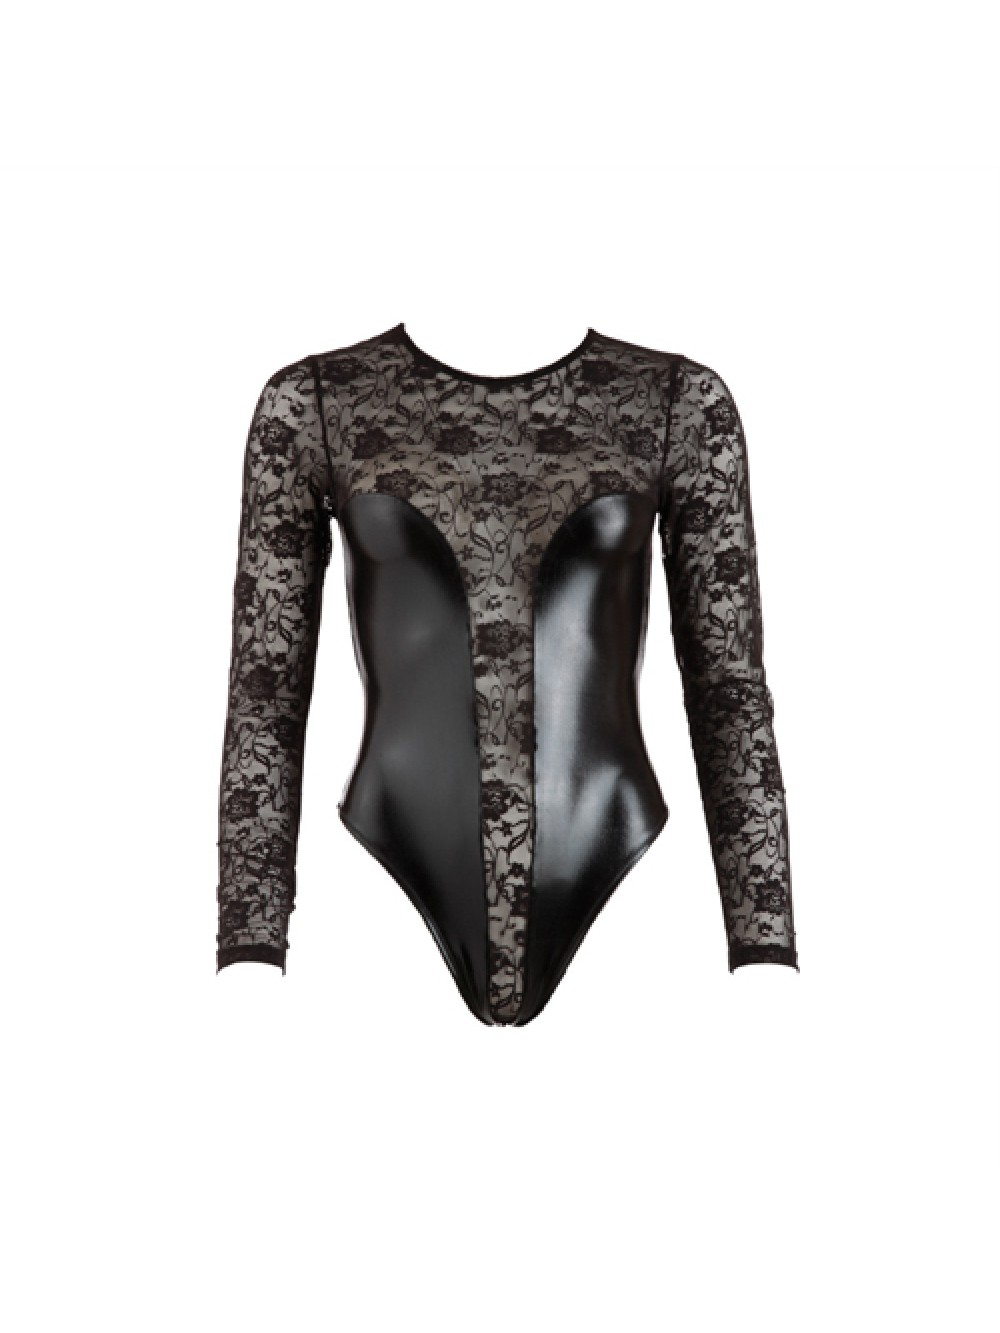 Lace Wetlook Body 4024144263059